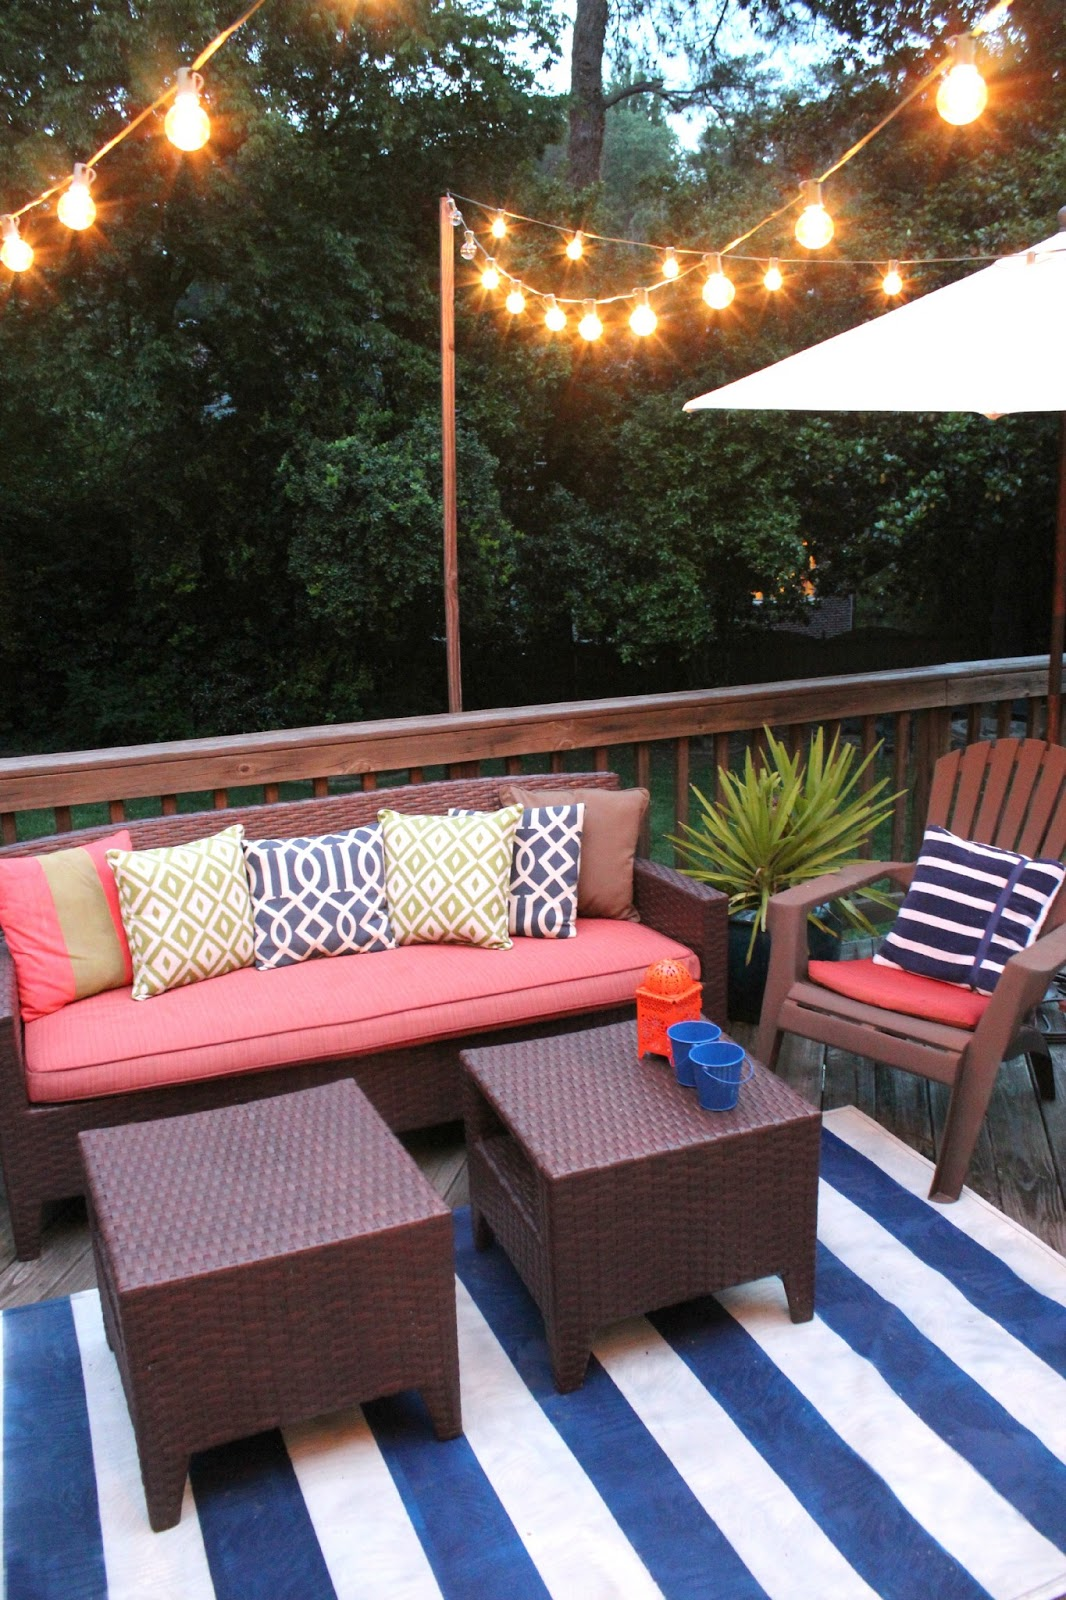 Our Back Porch is finally Ready for Summer Southern